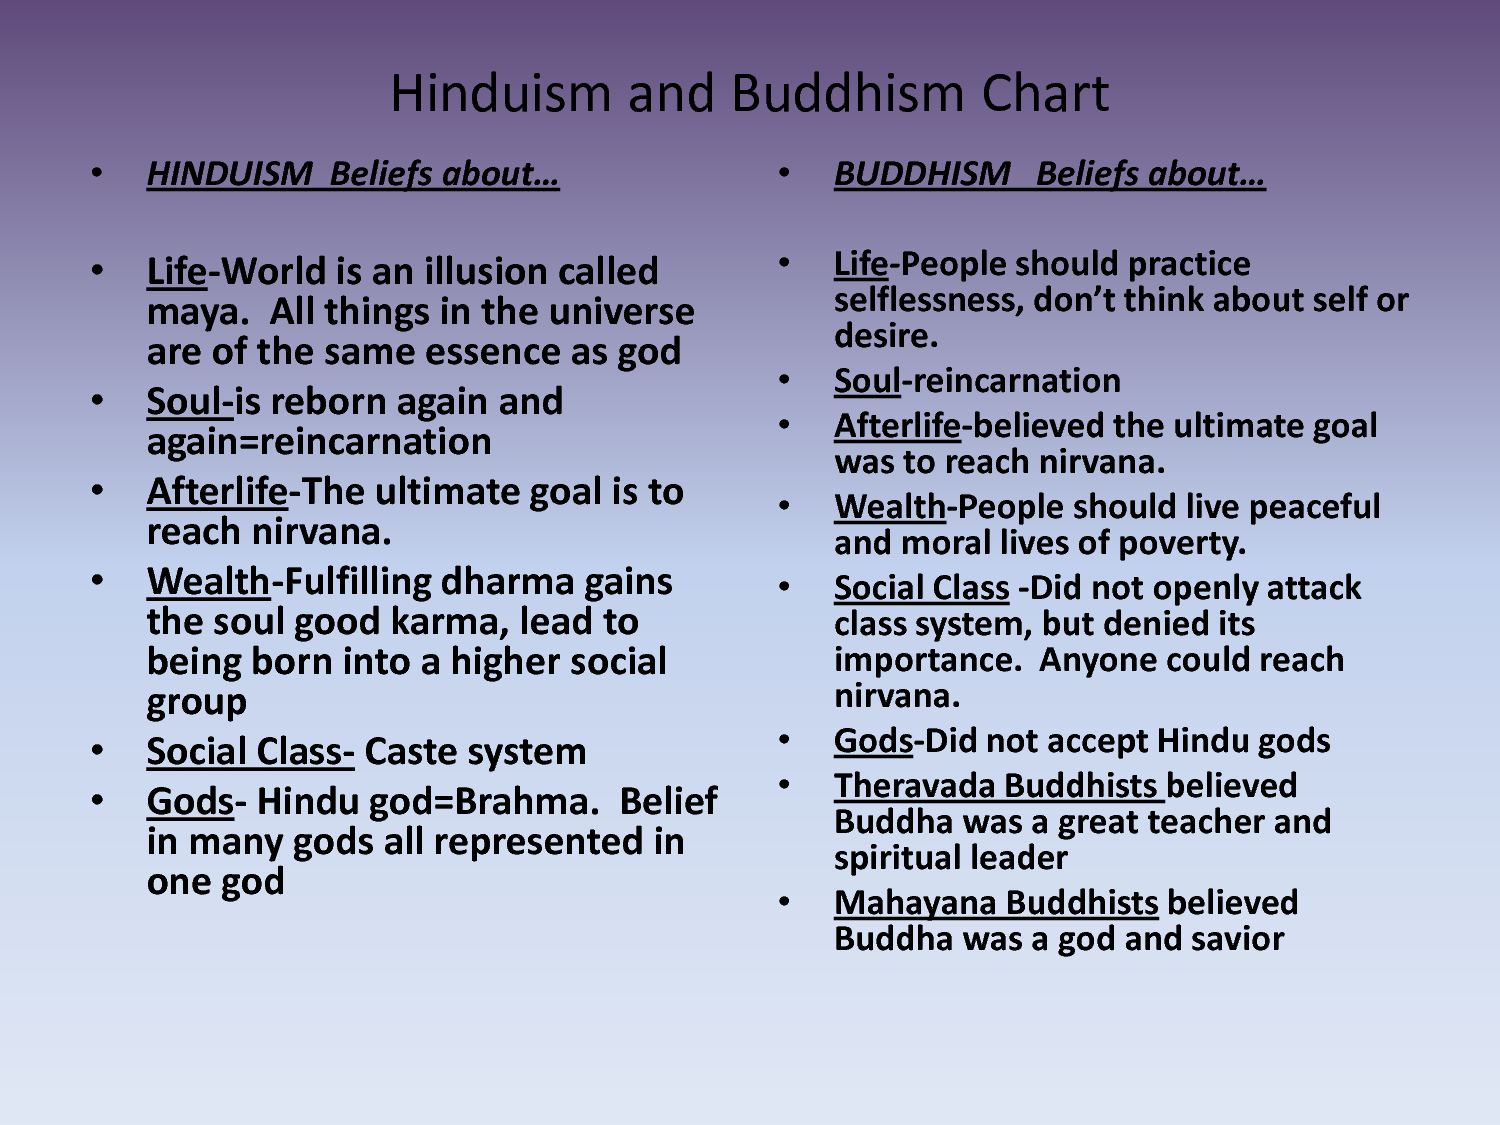 an introduction to the comparison of christianity and buddhism Comparison between buddhism and christianity: free comparison sample to help you write excellent academic papers for high school, college, and university check out our professional examples to inspire at essaysprofessorscom.